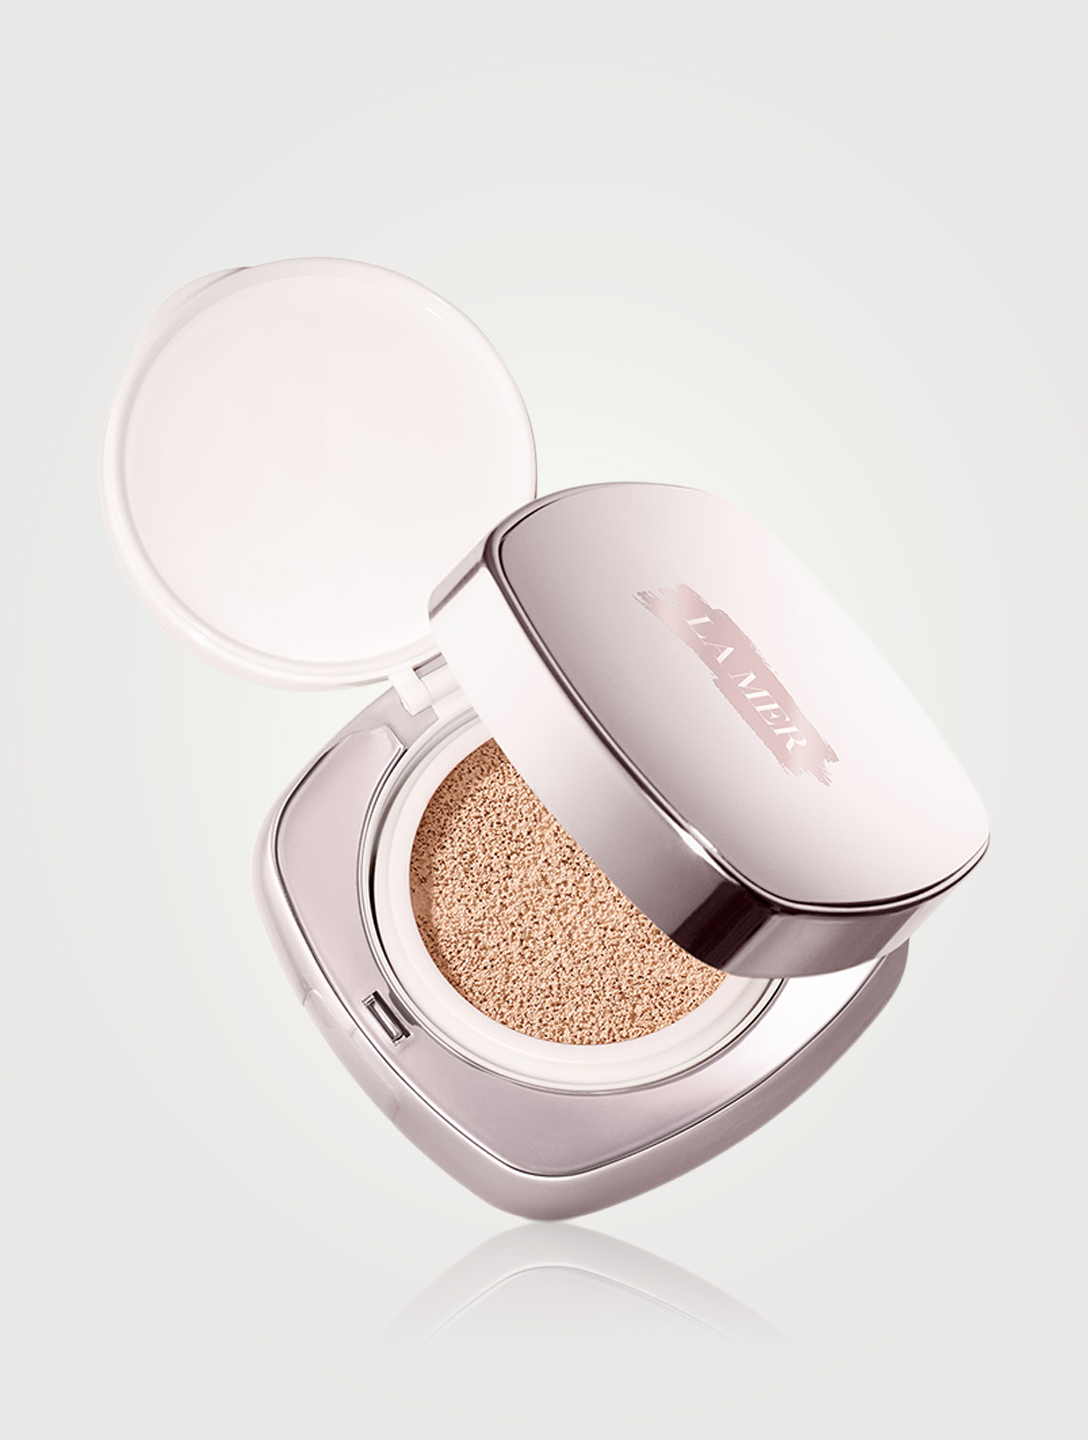 LA MER The Luminous Lifting Cushion Foundation SPF 20 Beauty Neutral